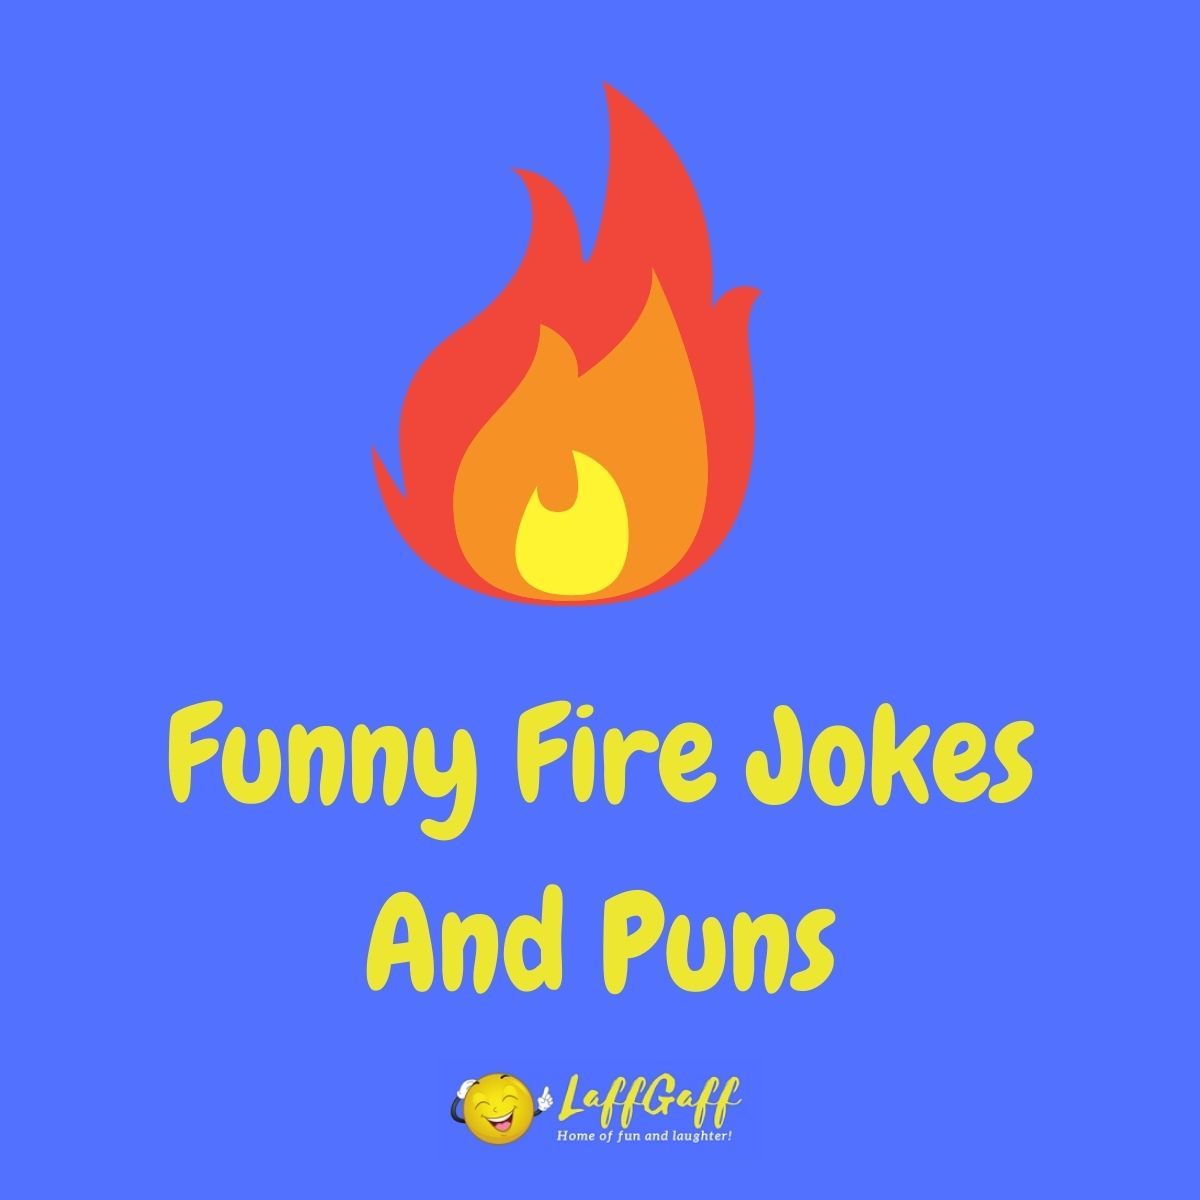 Featured image for a page of funny fire jokes and puns.